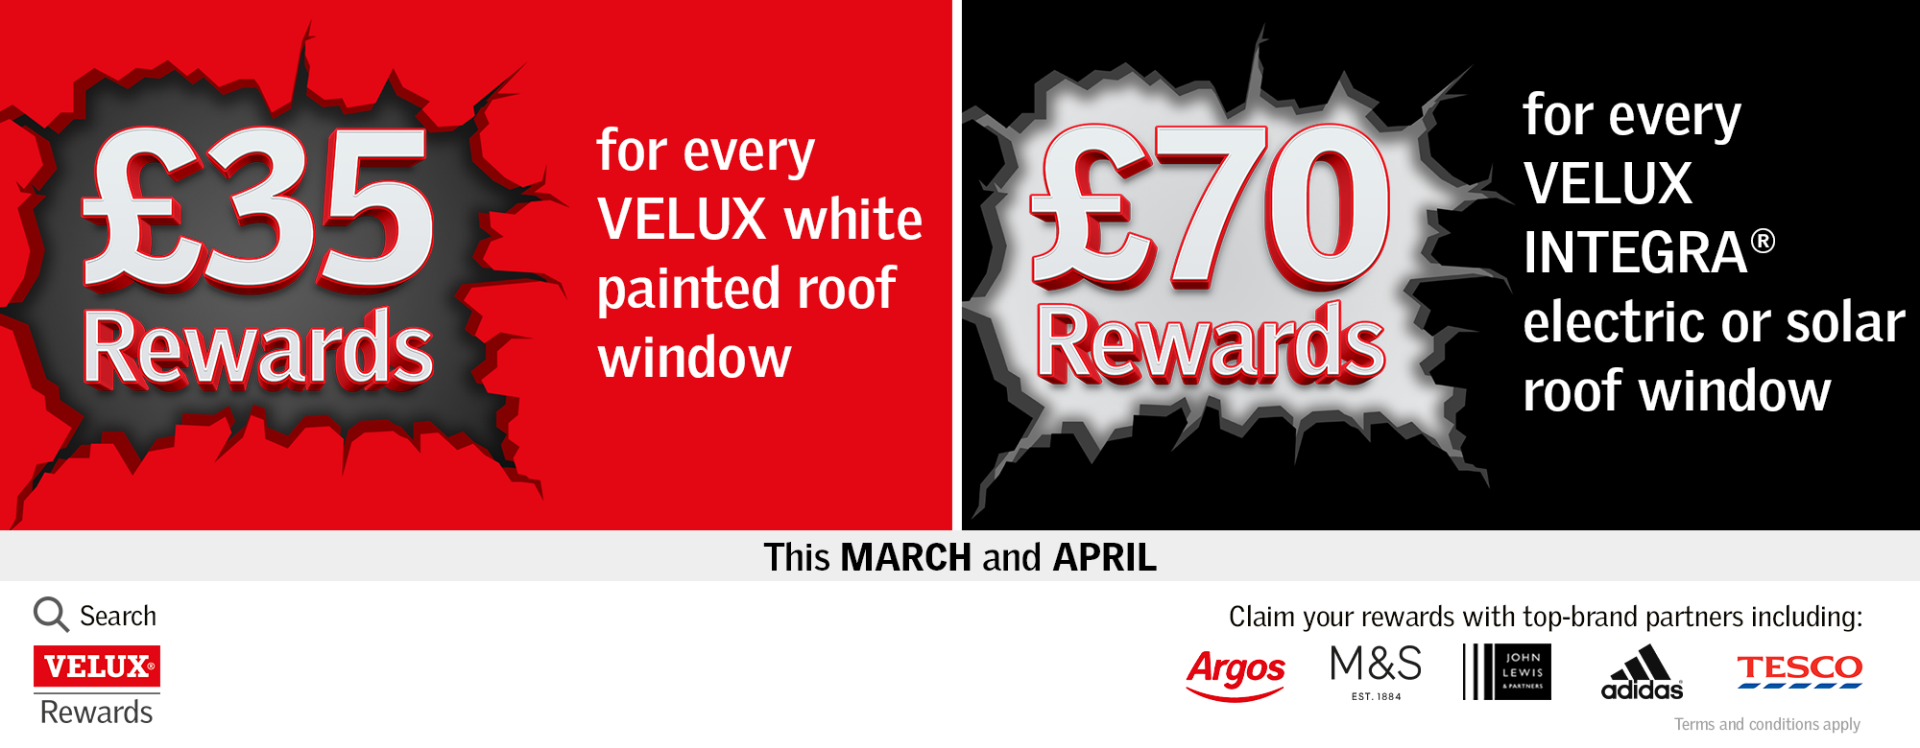 VELUX Double Rewards Promotion: March & April 2020 | About Roofing Supplies